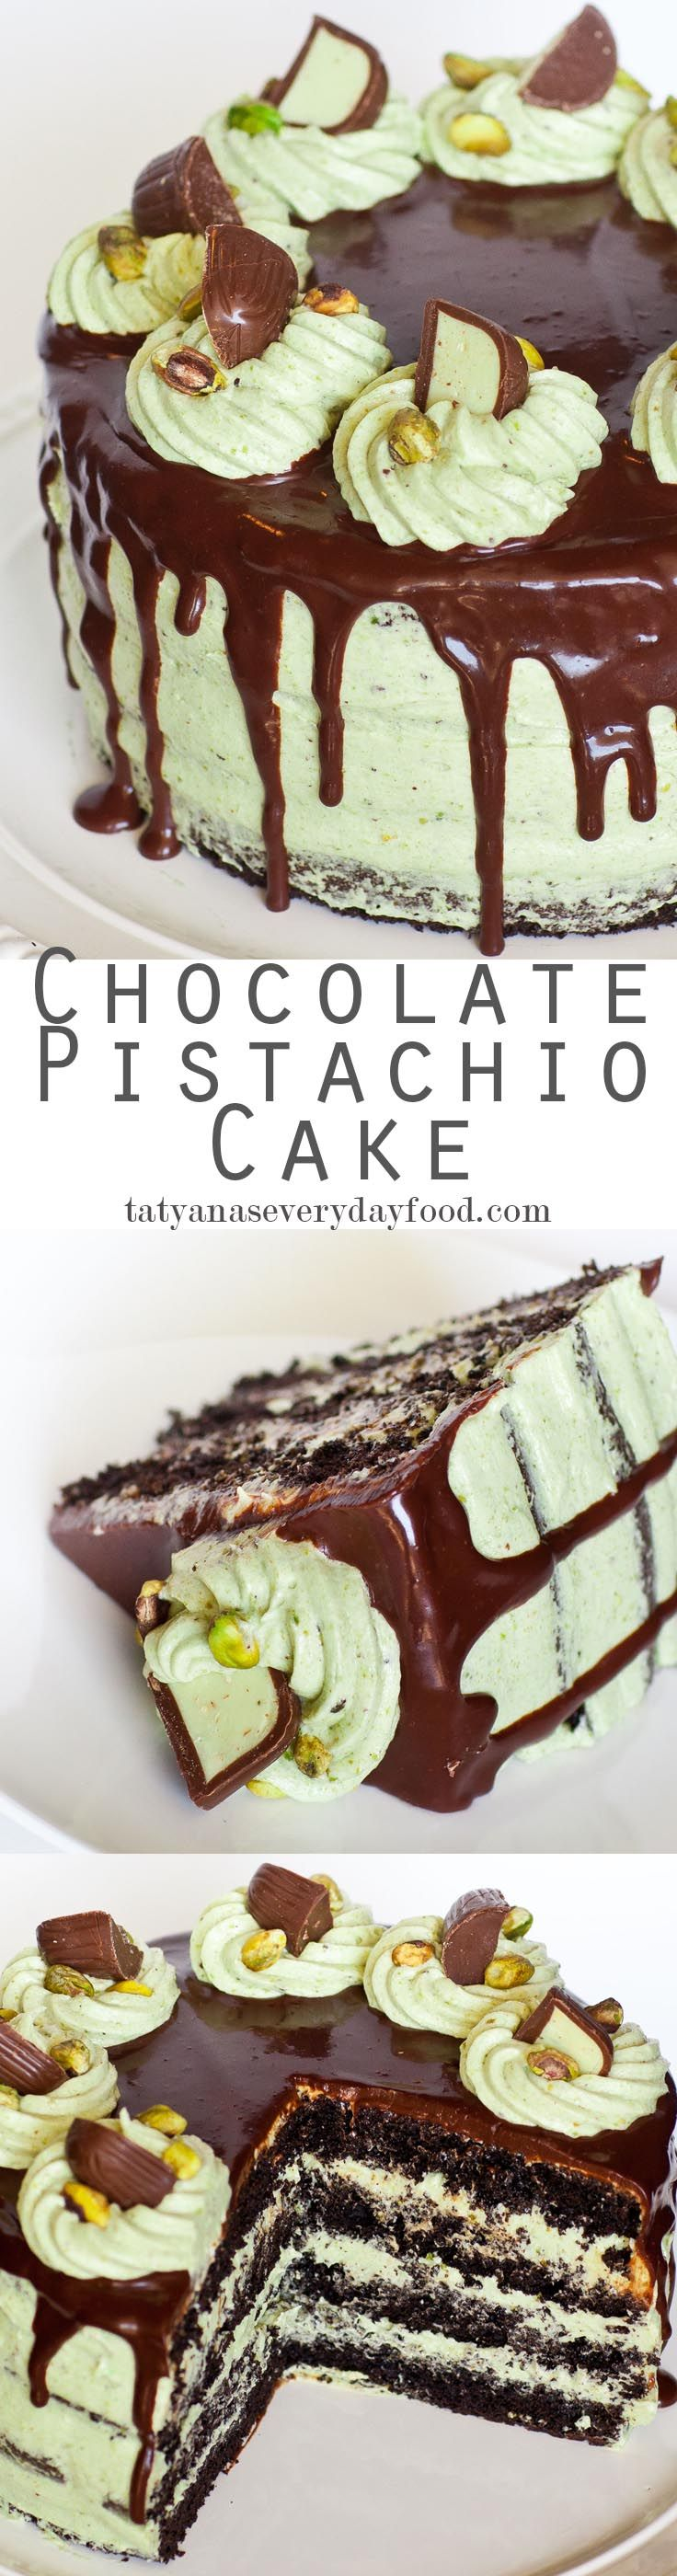 Chocolate Pistachio Cake with Irish Cream - with video recipe! {Tatyana's Everyday Food}